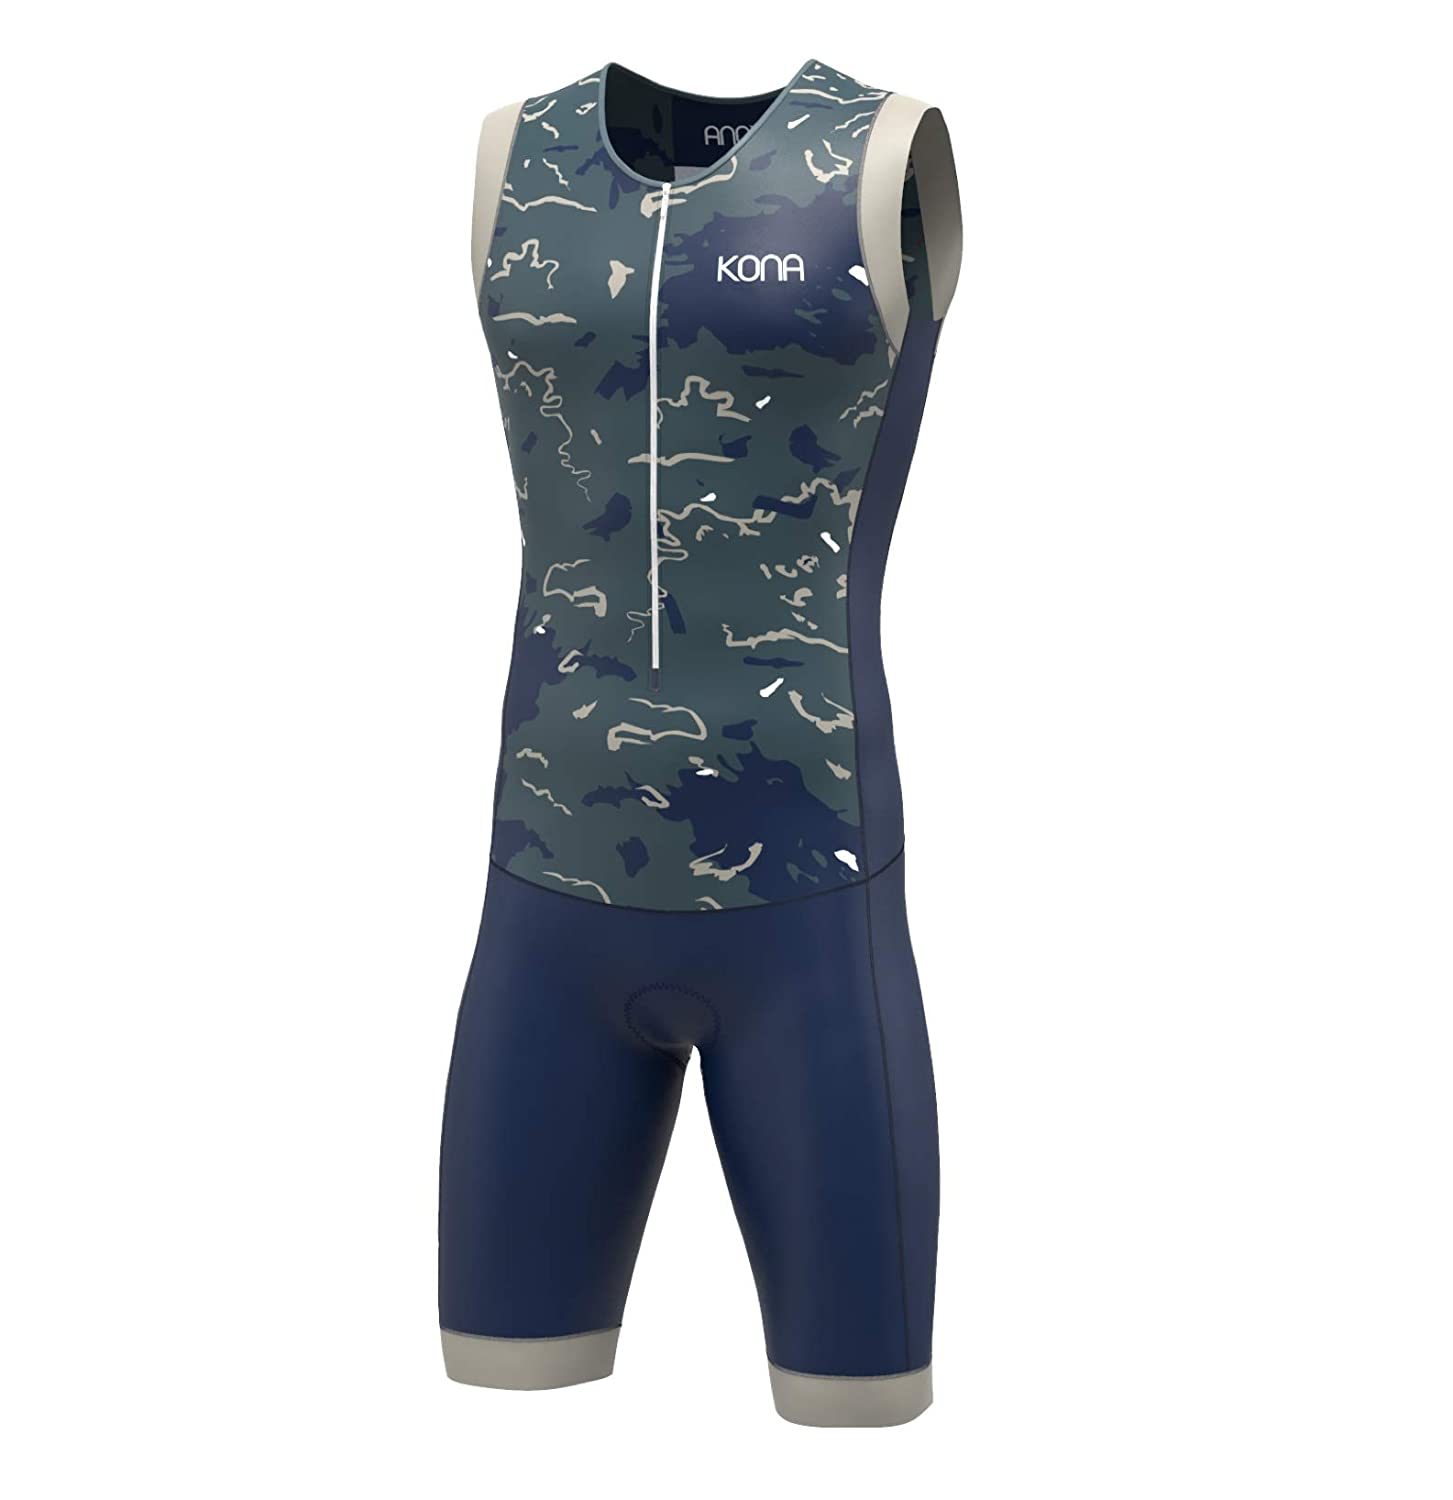 Amazon.com : KONA Assault Triathlon Race Suit - Speedsuit ...